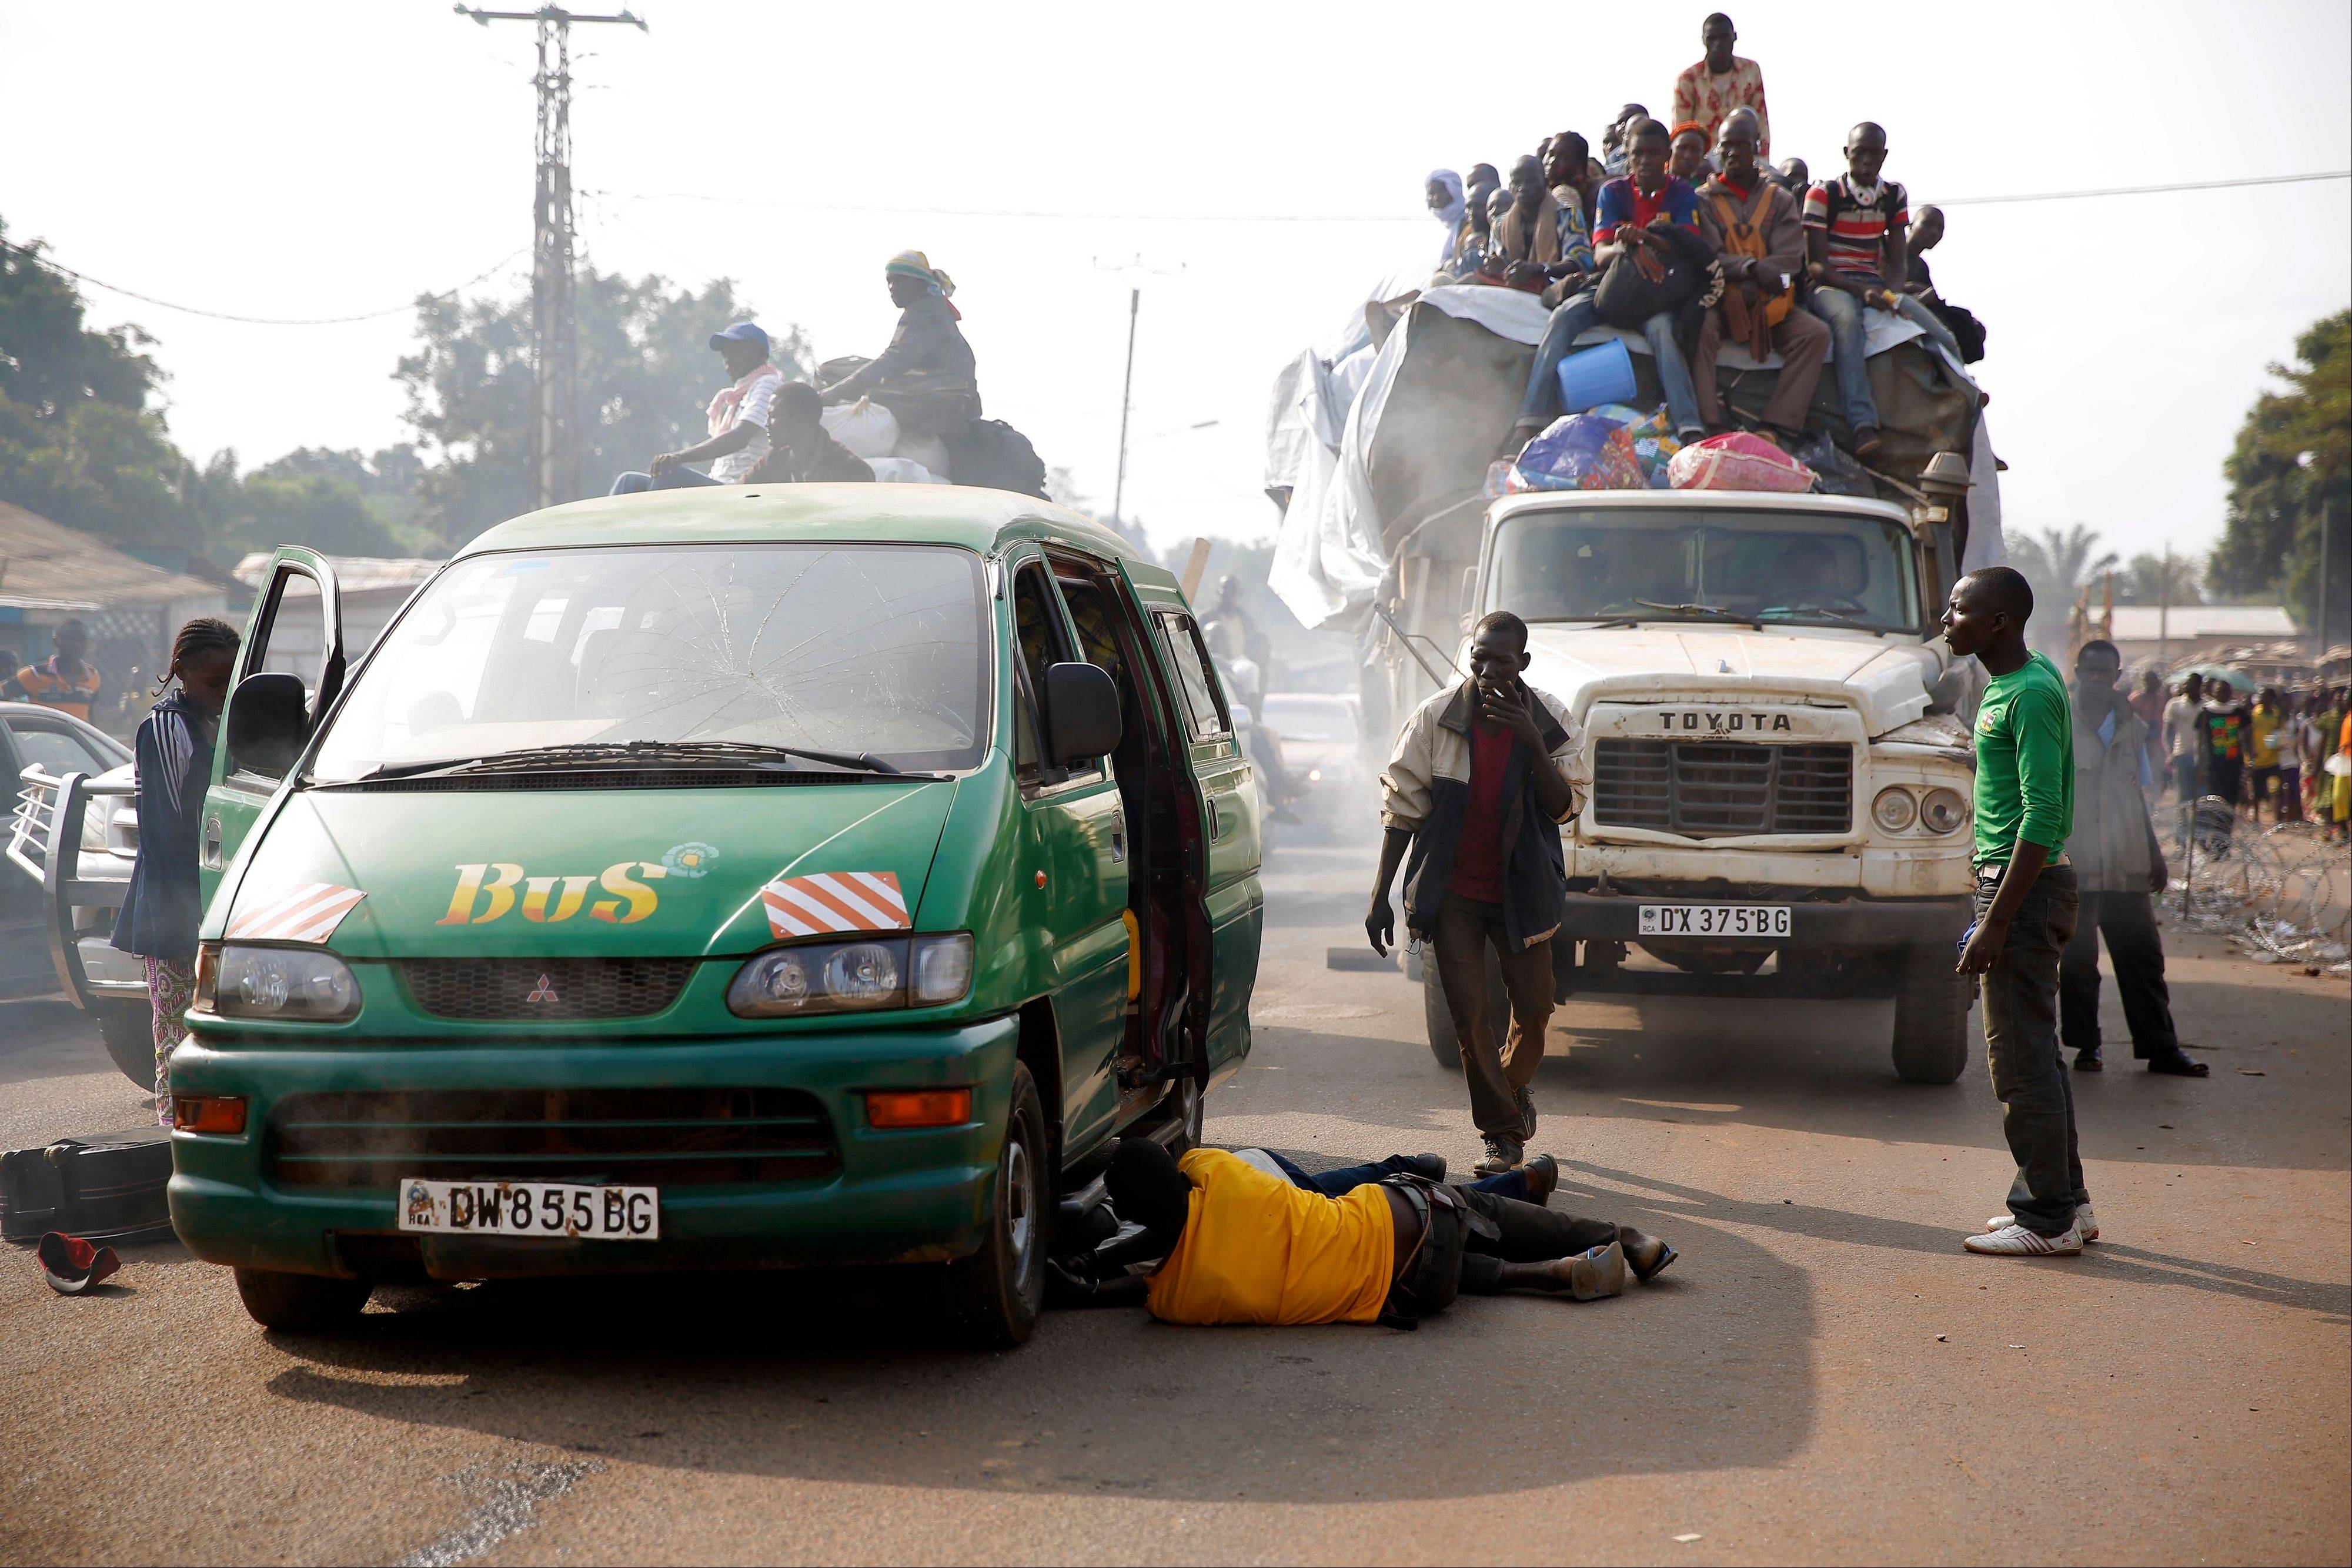 Tit-for-tat violence killed more than 1,000 people in Bangui alone in a matter of days in December. An untold number have died in the weeks that followed, with most of the attacks in Bangui targeting Muslims.